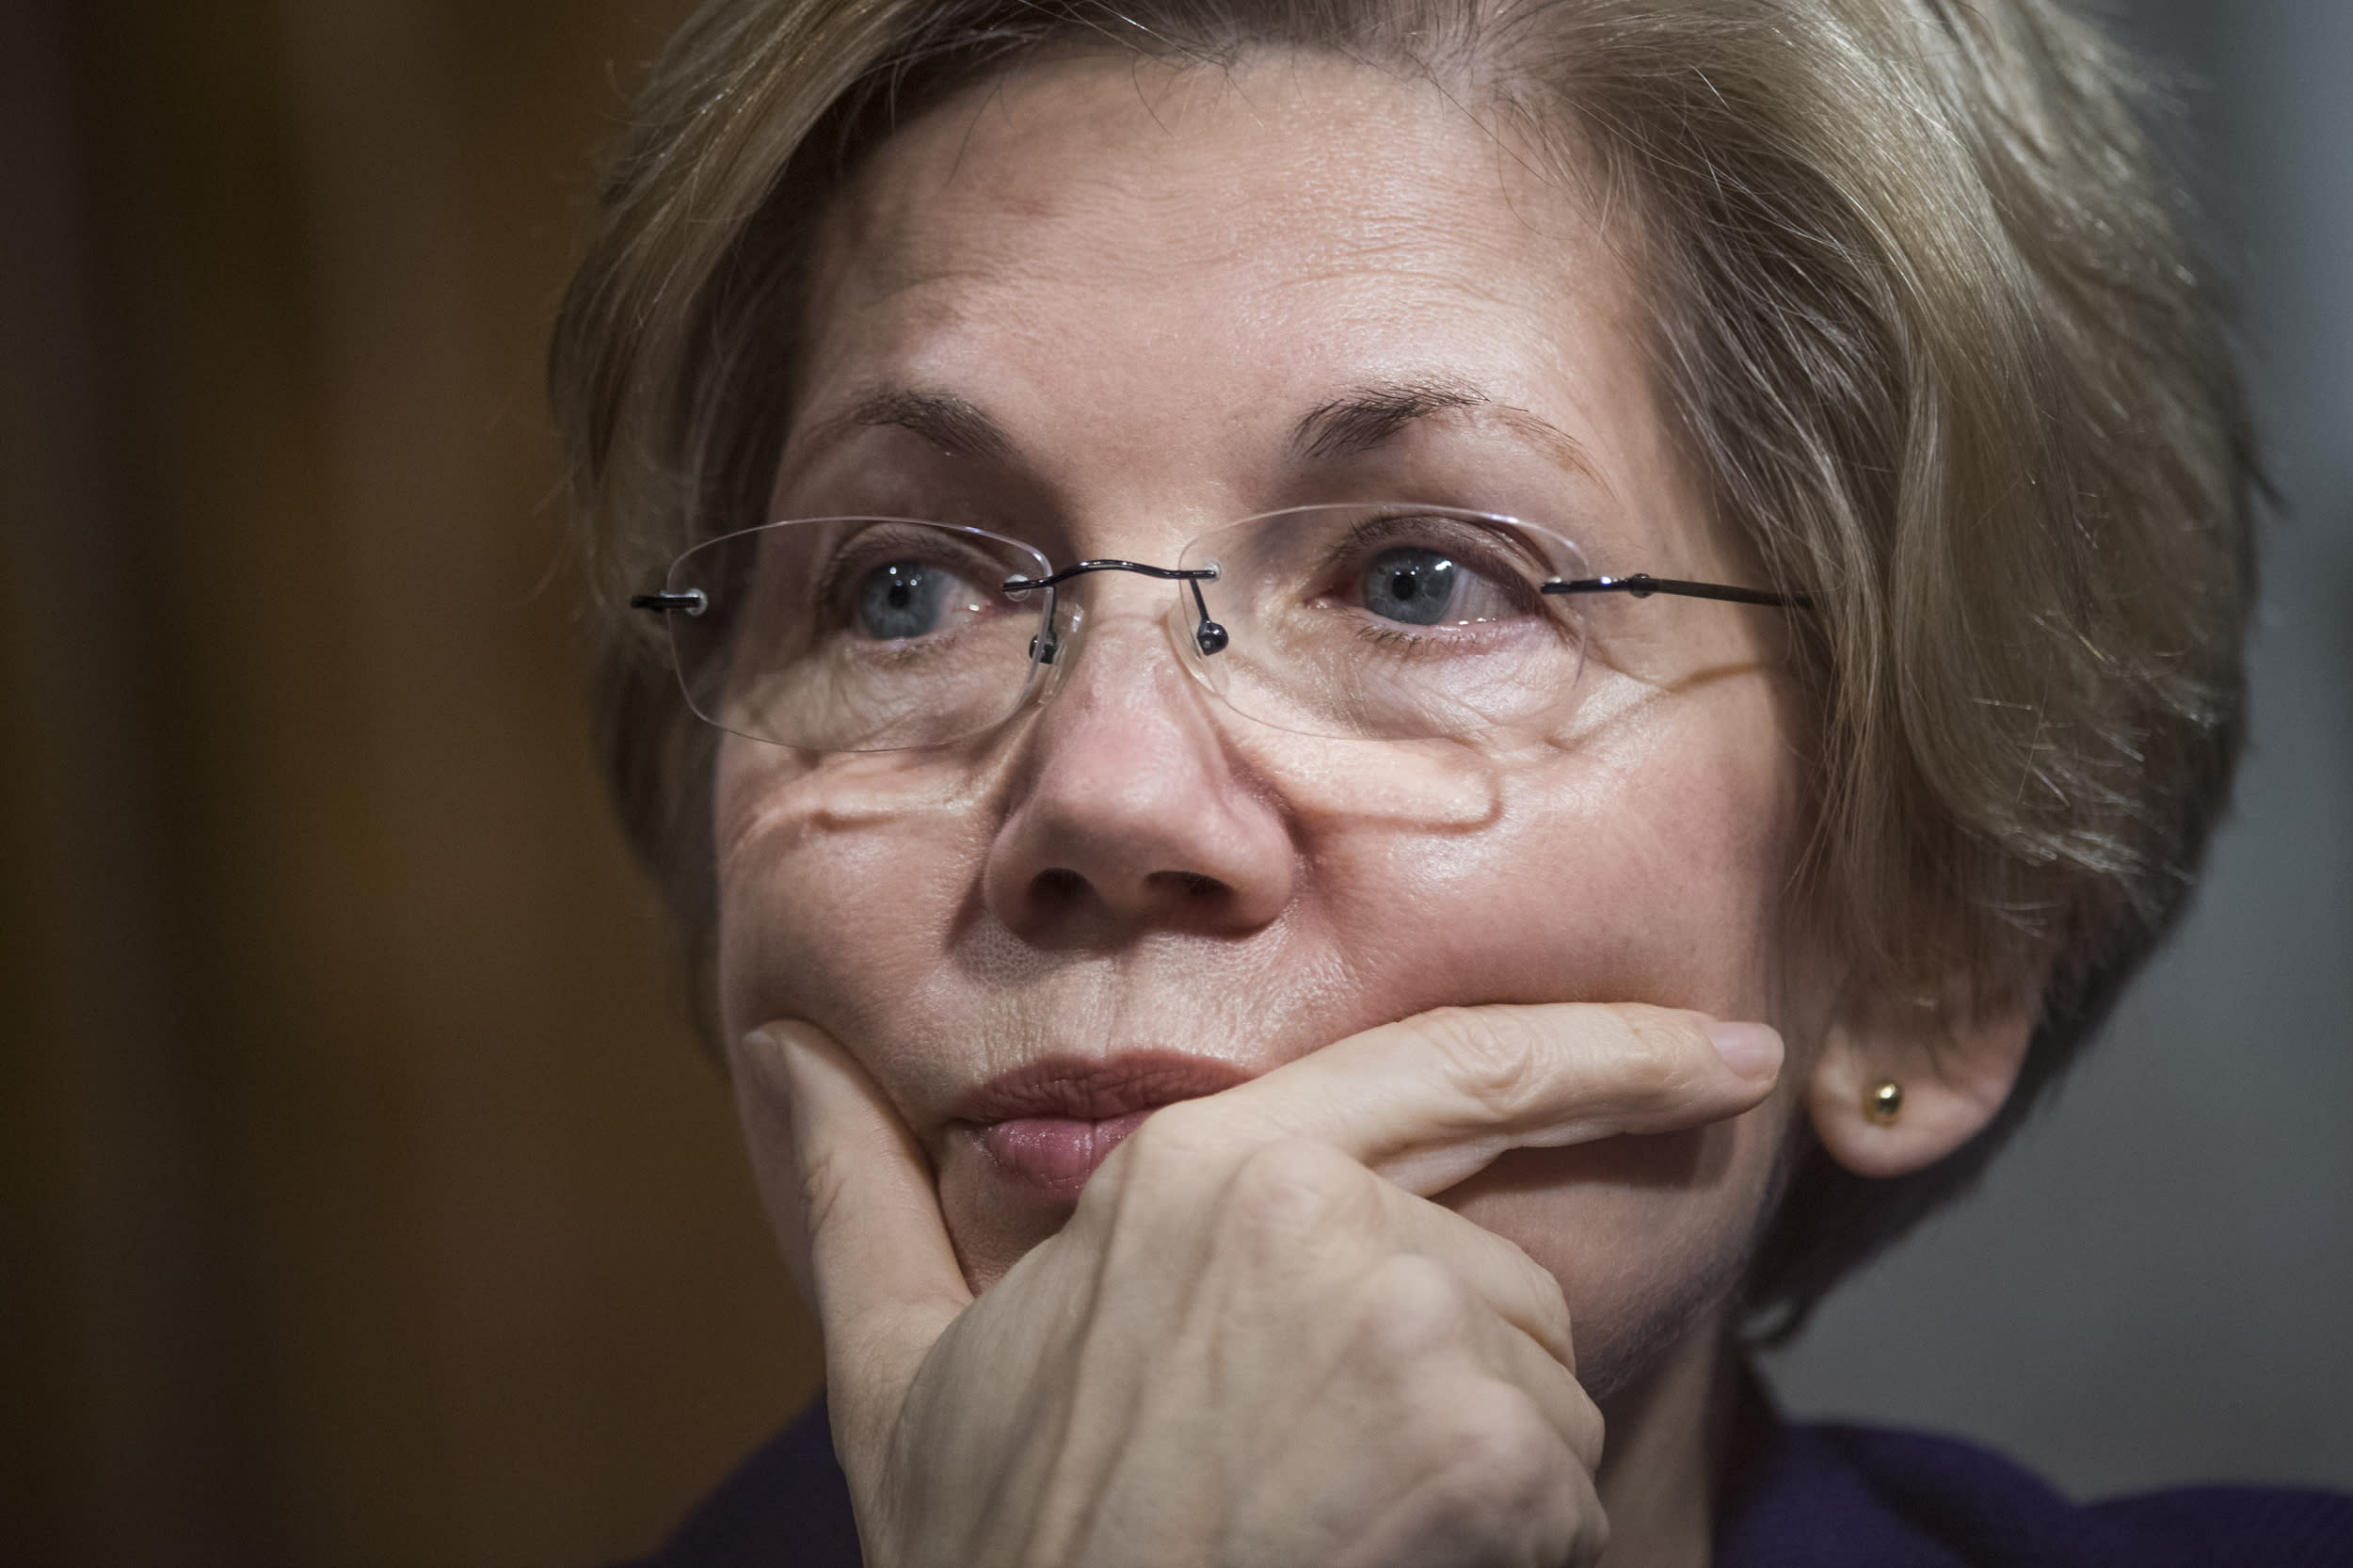 <p>Sen. Elizabeth Warren, D-Mass., attends a Senate Armed Services Committee hearing in Dirksen Building titled 'Foreign Cyber Threats to the United States,' featuring testimony by Director of National Intelligence James Clapper and others, January 5, 2016.</p>  <p>(Photo By Tom Williams/CQ Roll Call)</p>